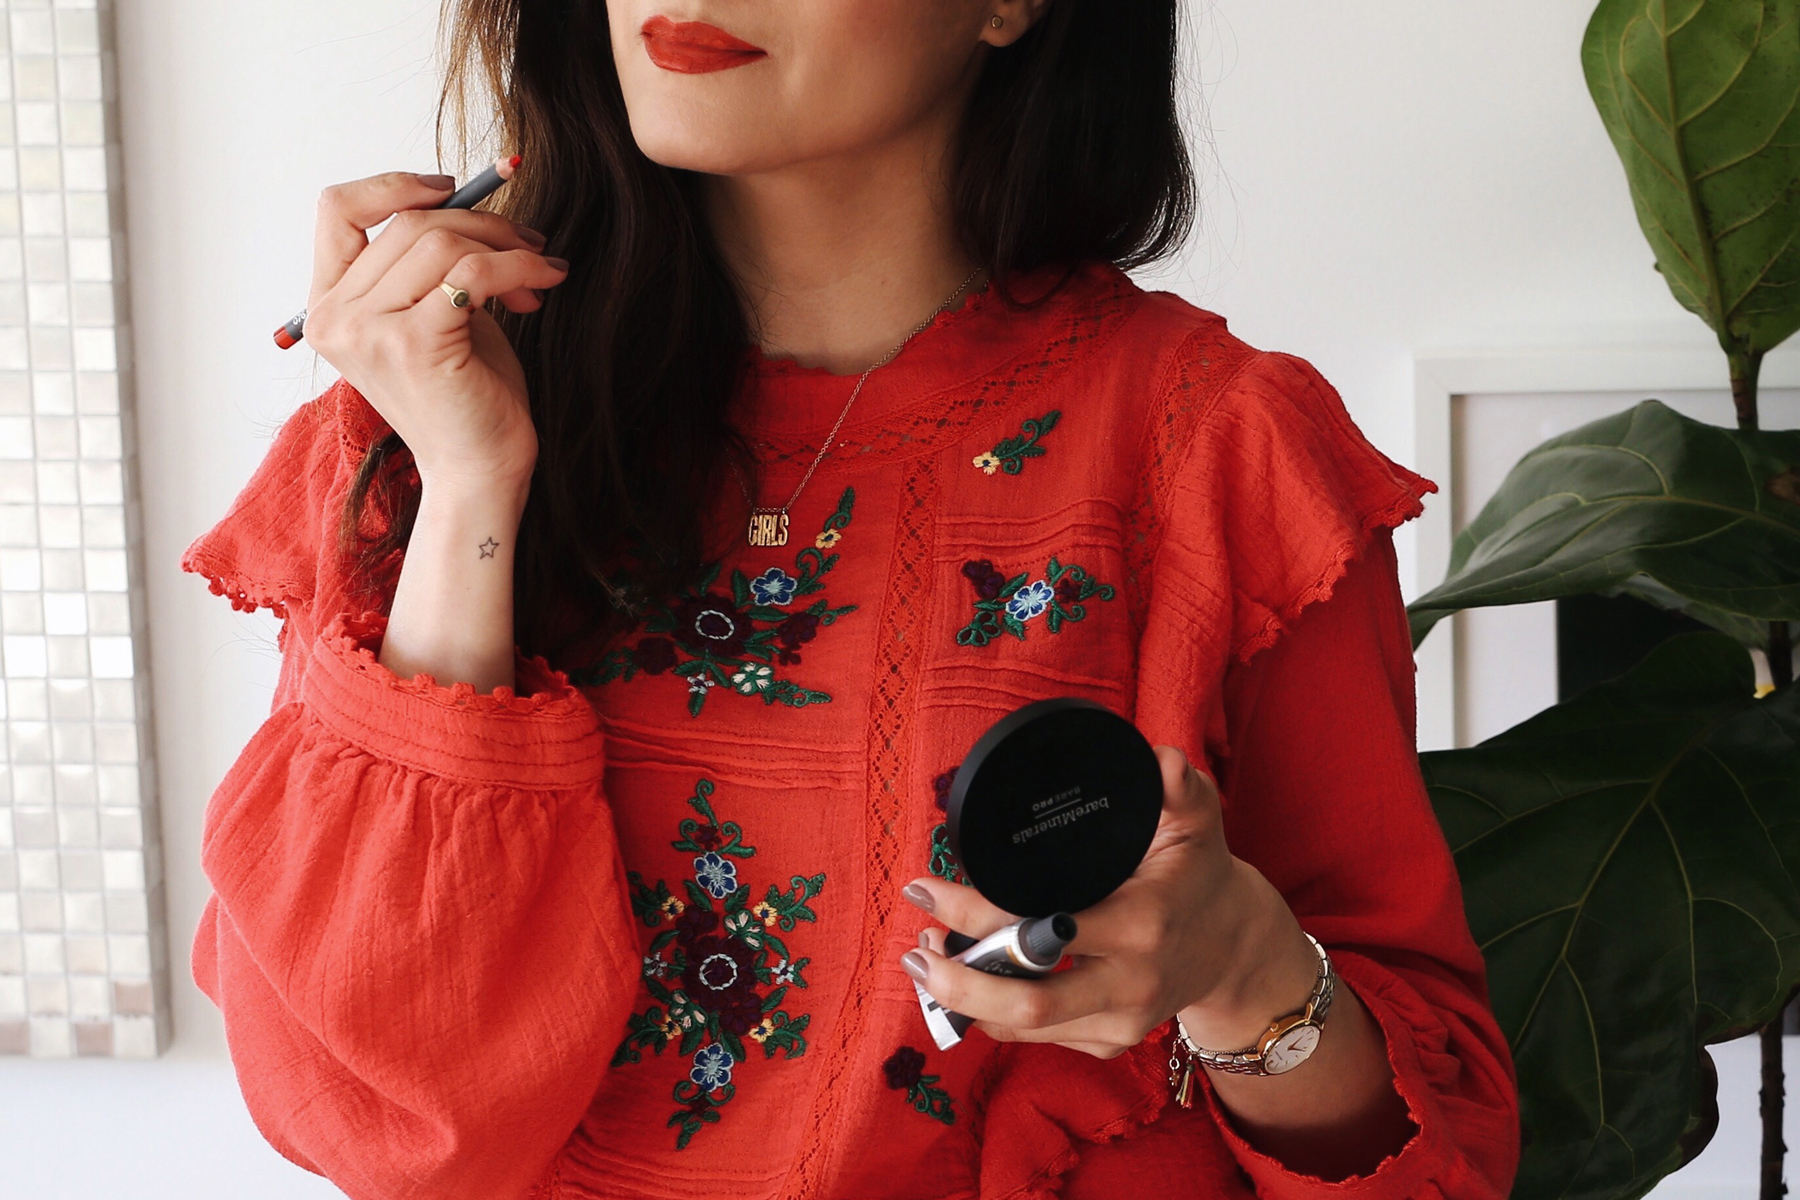 lipsick.me - bite beauty everyday agave lip mask full collection - free people embroidered blouse copy.jpg